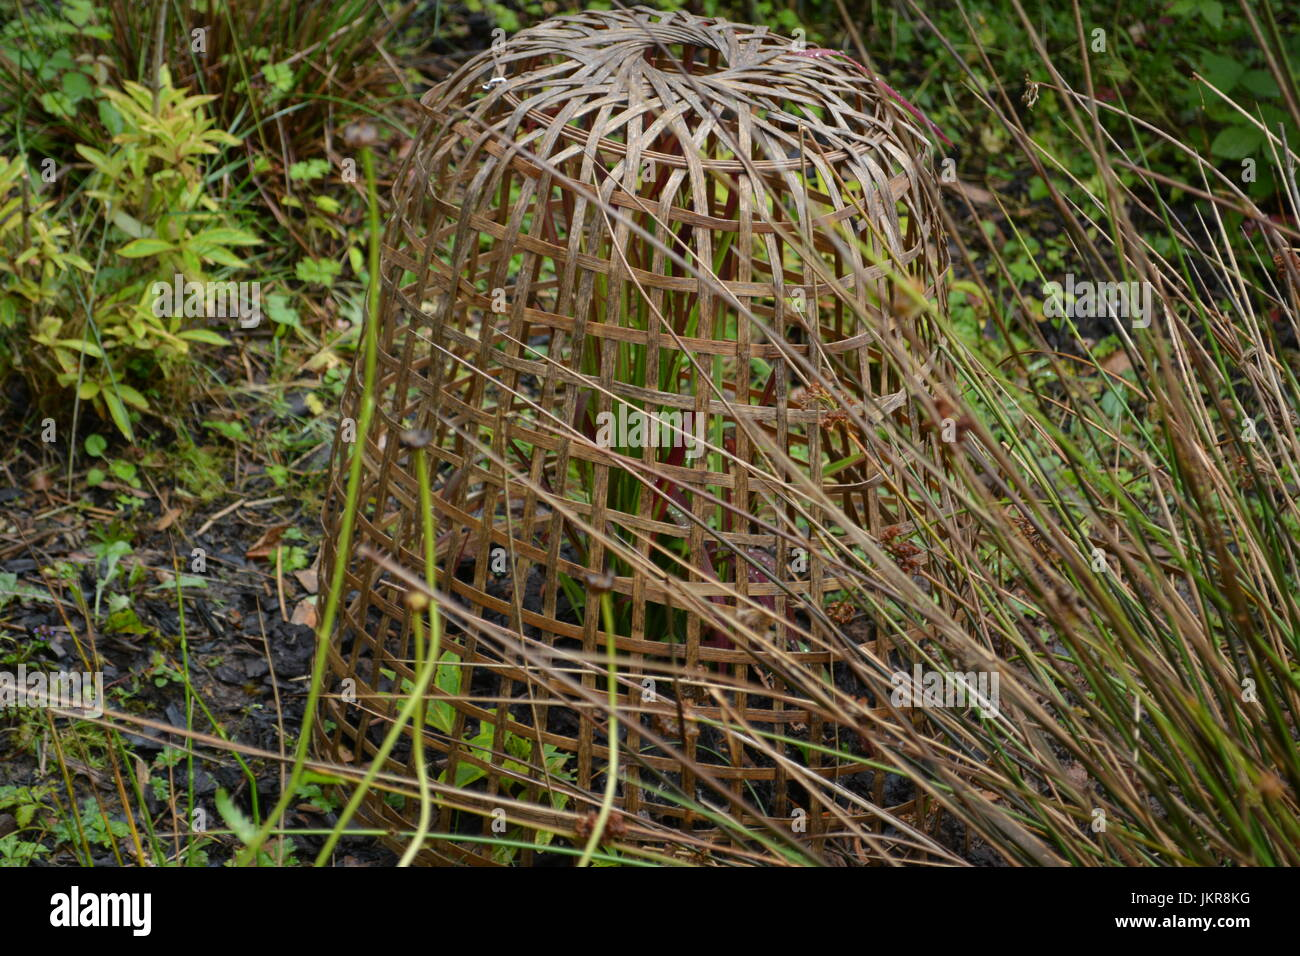 Open weaved domed reed basket protecting planted shrub from foxes deers wildlife in border of established mature - Stock Image